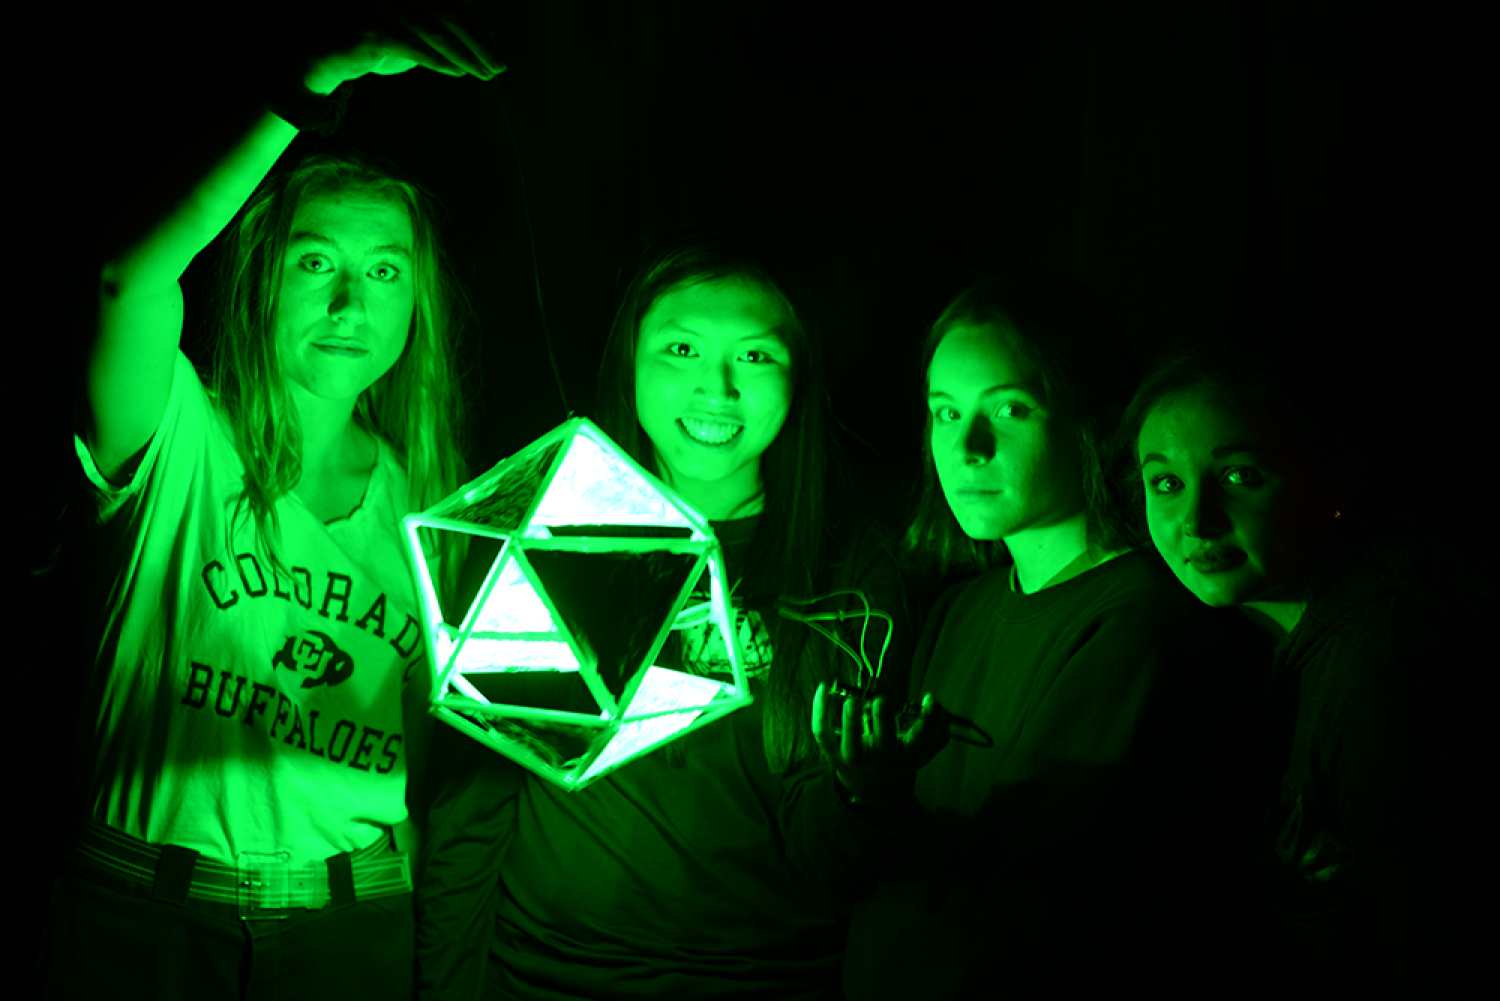 """Kylie McKee, Rylee Gordon, Ashley Koett & Rebecca Geist are lit by the green glow of one of the sample lights for their project, """"Tunnel VIsion."""""""